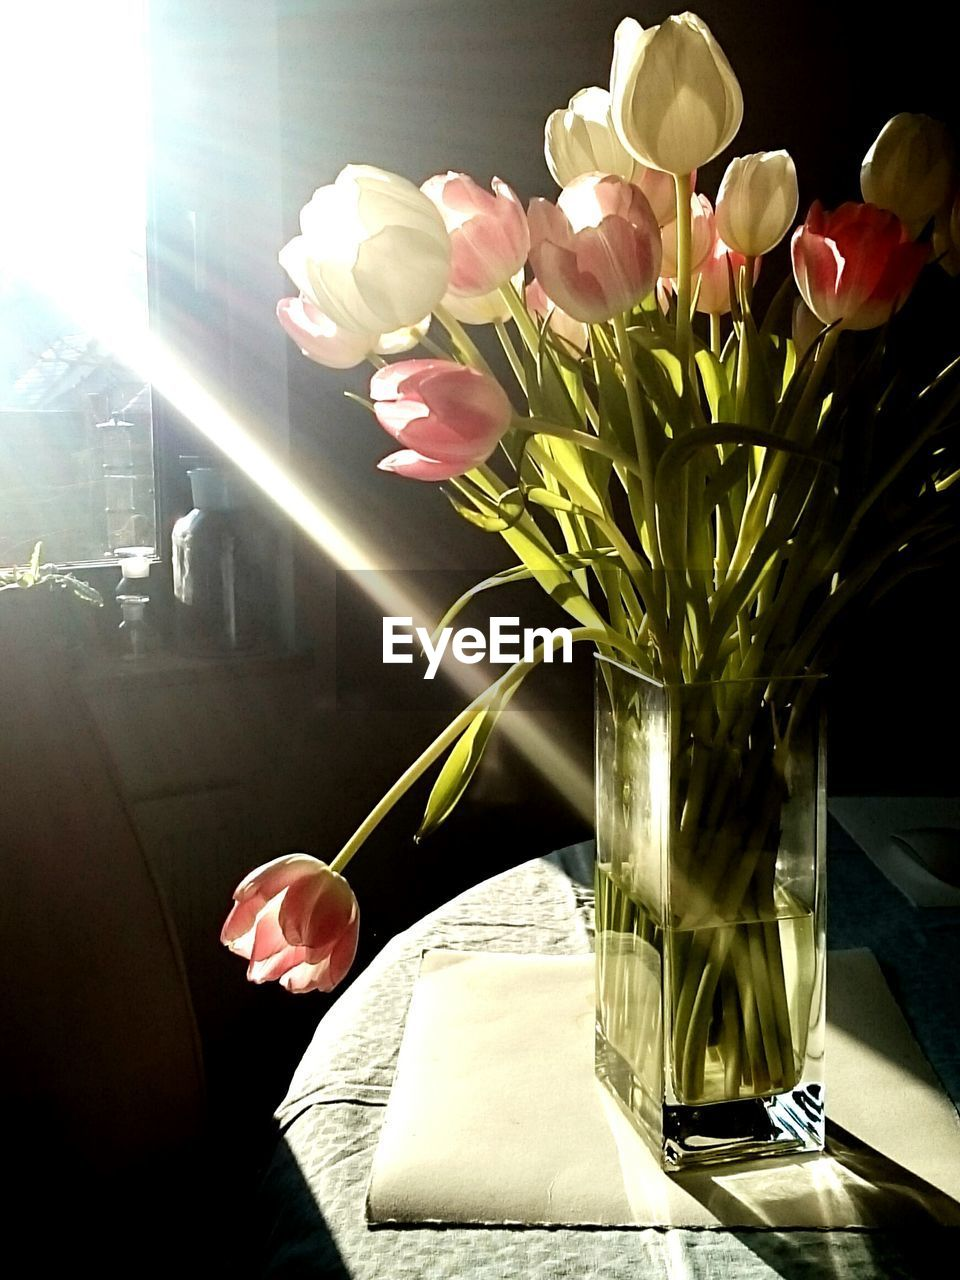 flower, vase, indoors, sunlight, tulip, petal, nature, beauty in nature, no people, flower head, bouquet, freshness, fragility, day, close-up